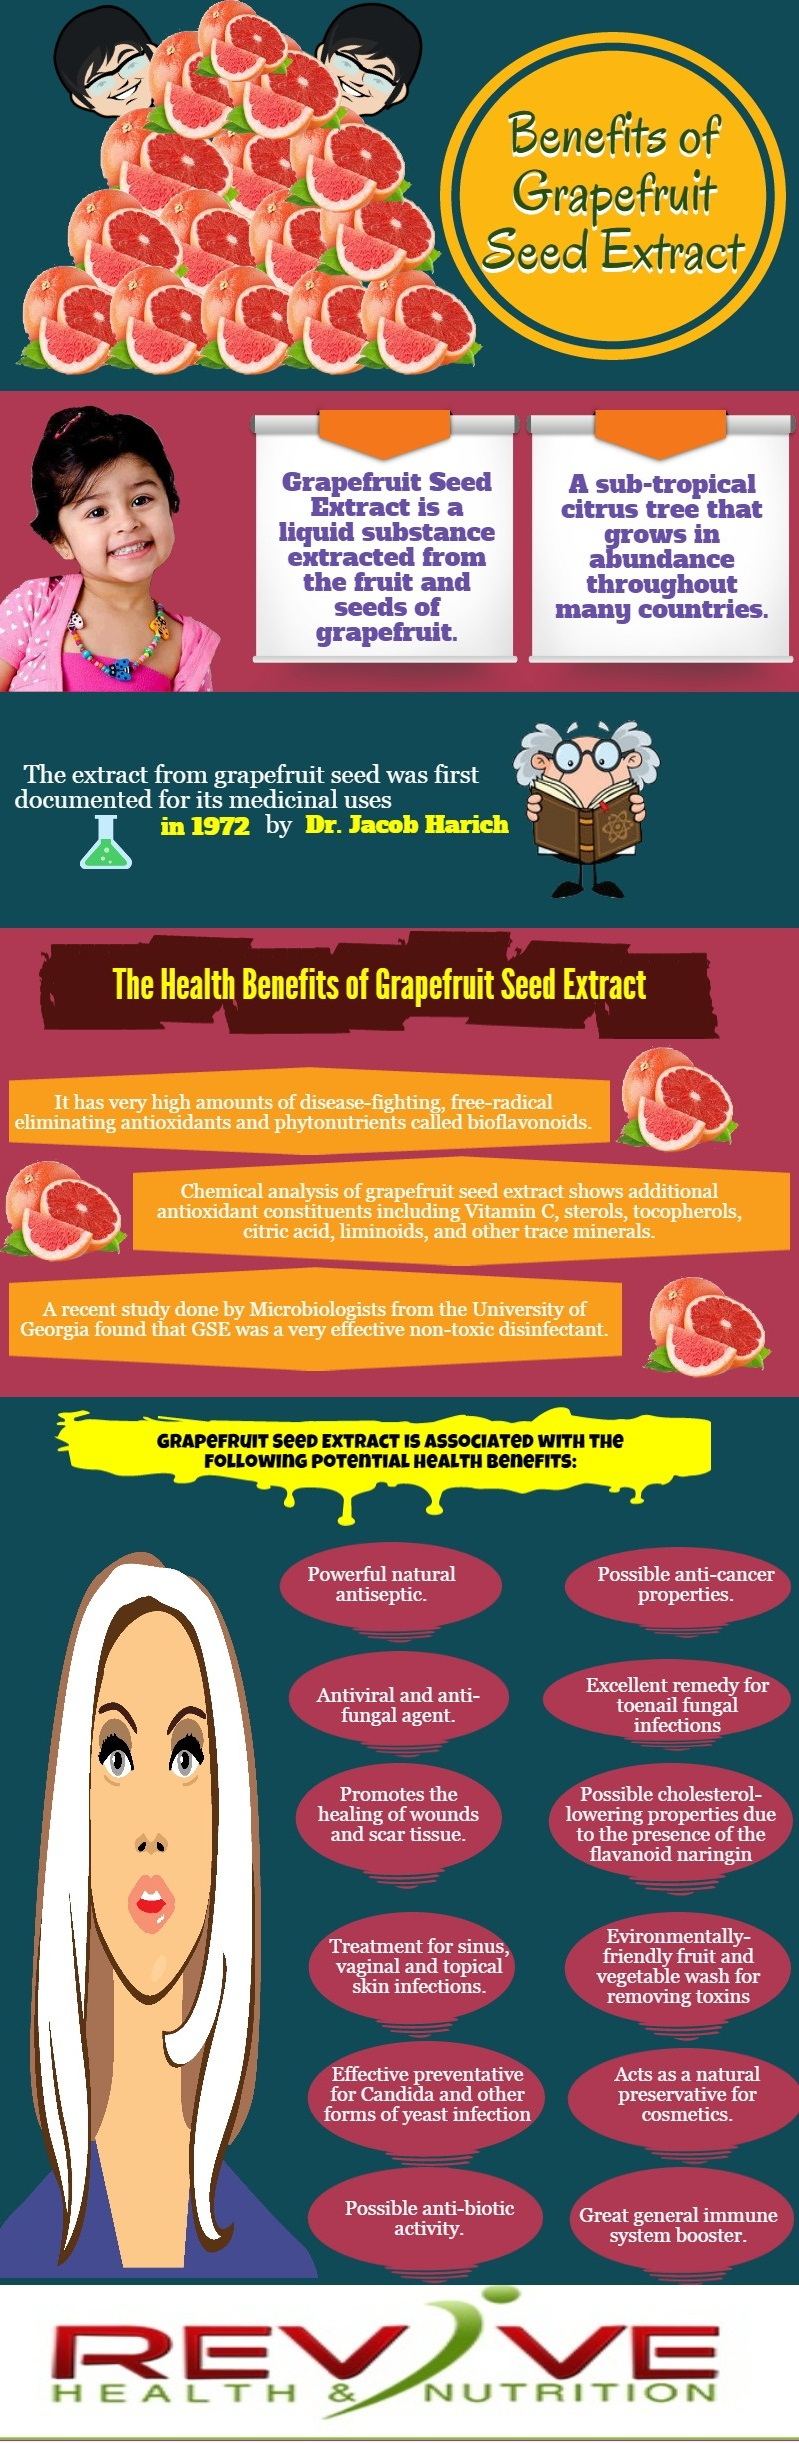 Benefits_of_Grapefruit_Seed_Extract